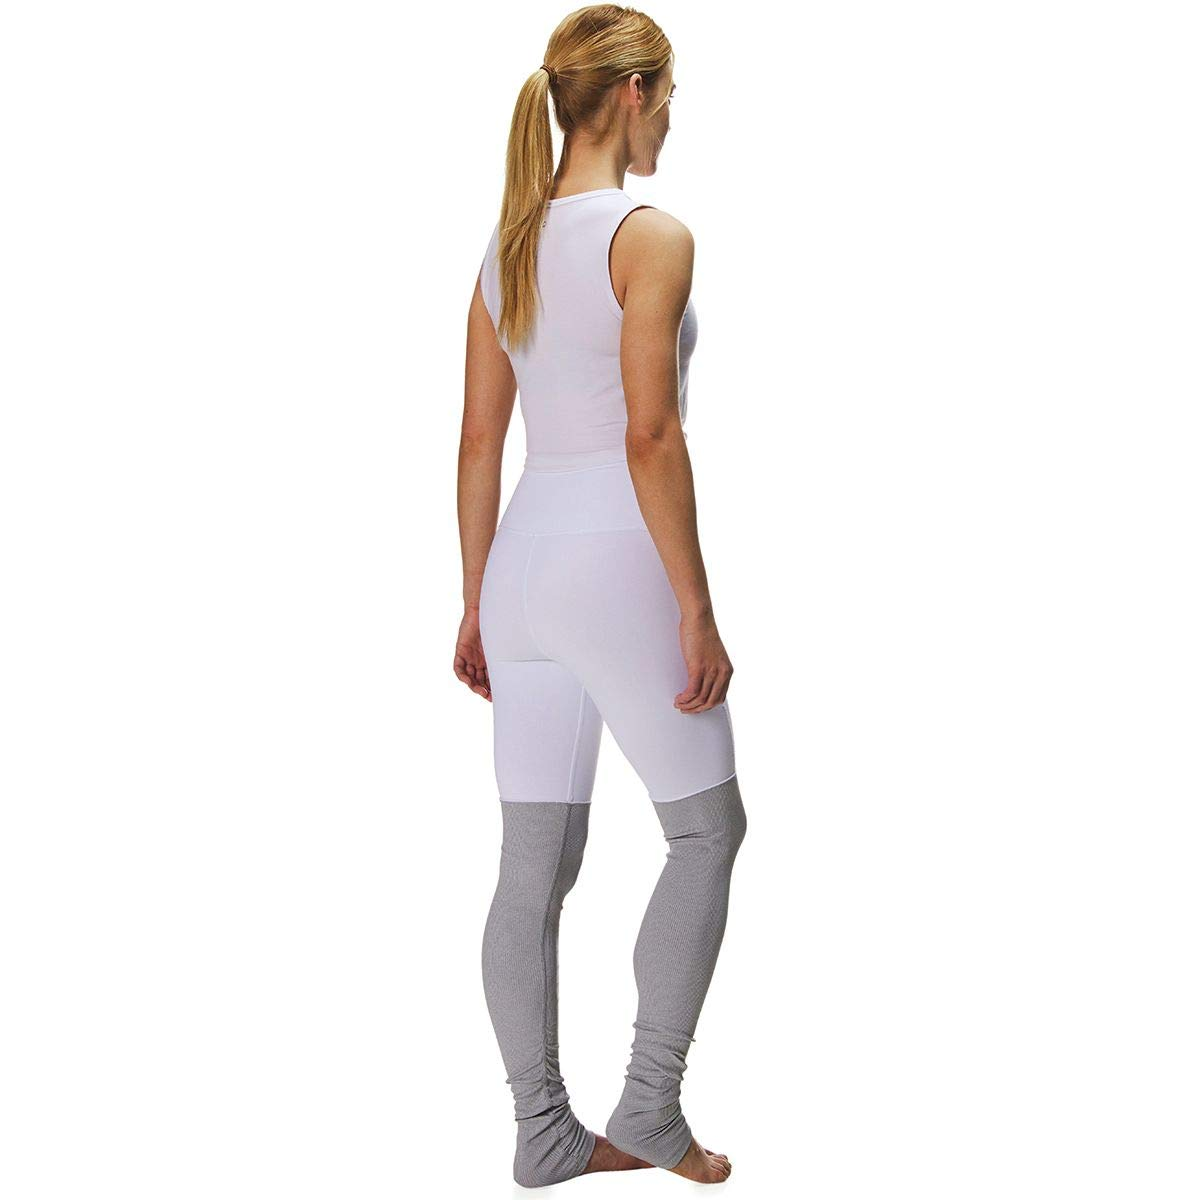 Alo Yoga High-Waist Goddess Legging - Women's White/Dove Grey Heather, S by Alo Yoga (Image #2)